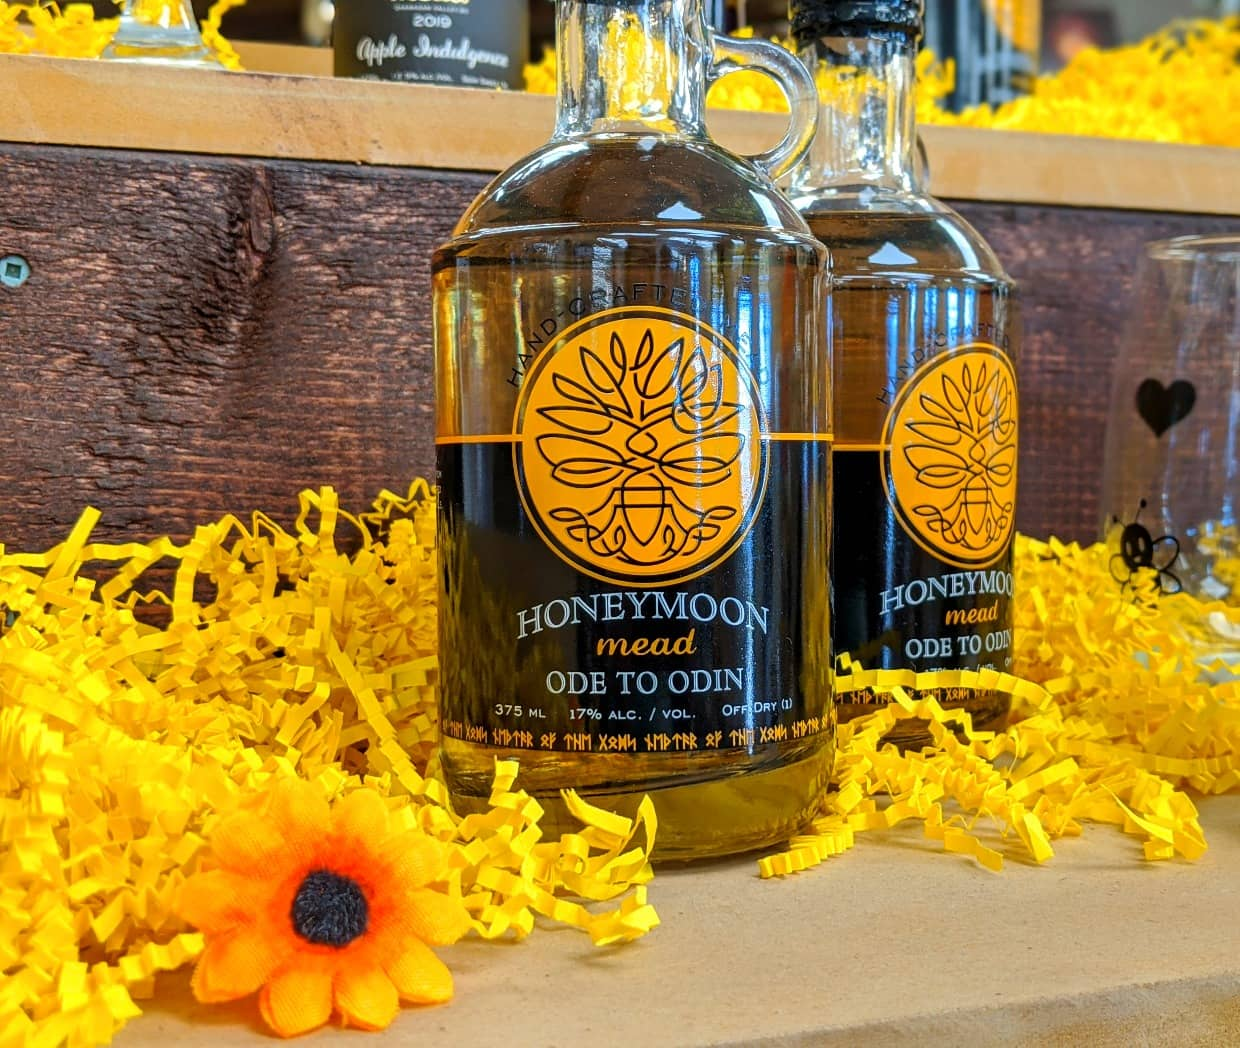 Two bottles of Ode to Odin Honeymoon Mead on tasting bar at Plant Bee Honey Farm in Vernon